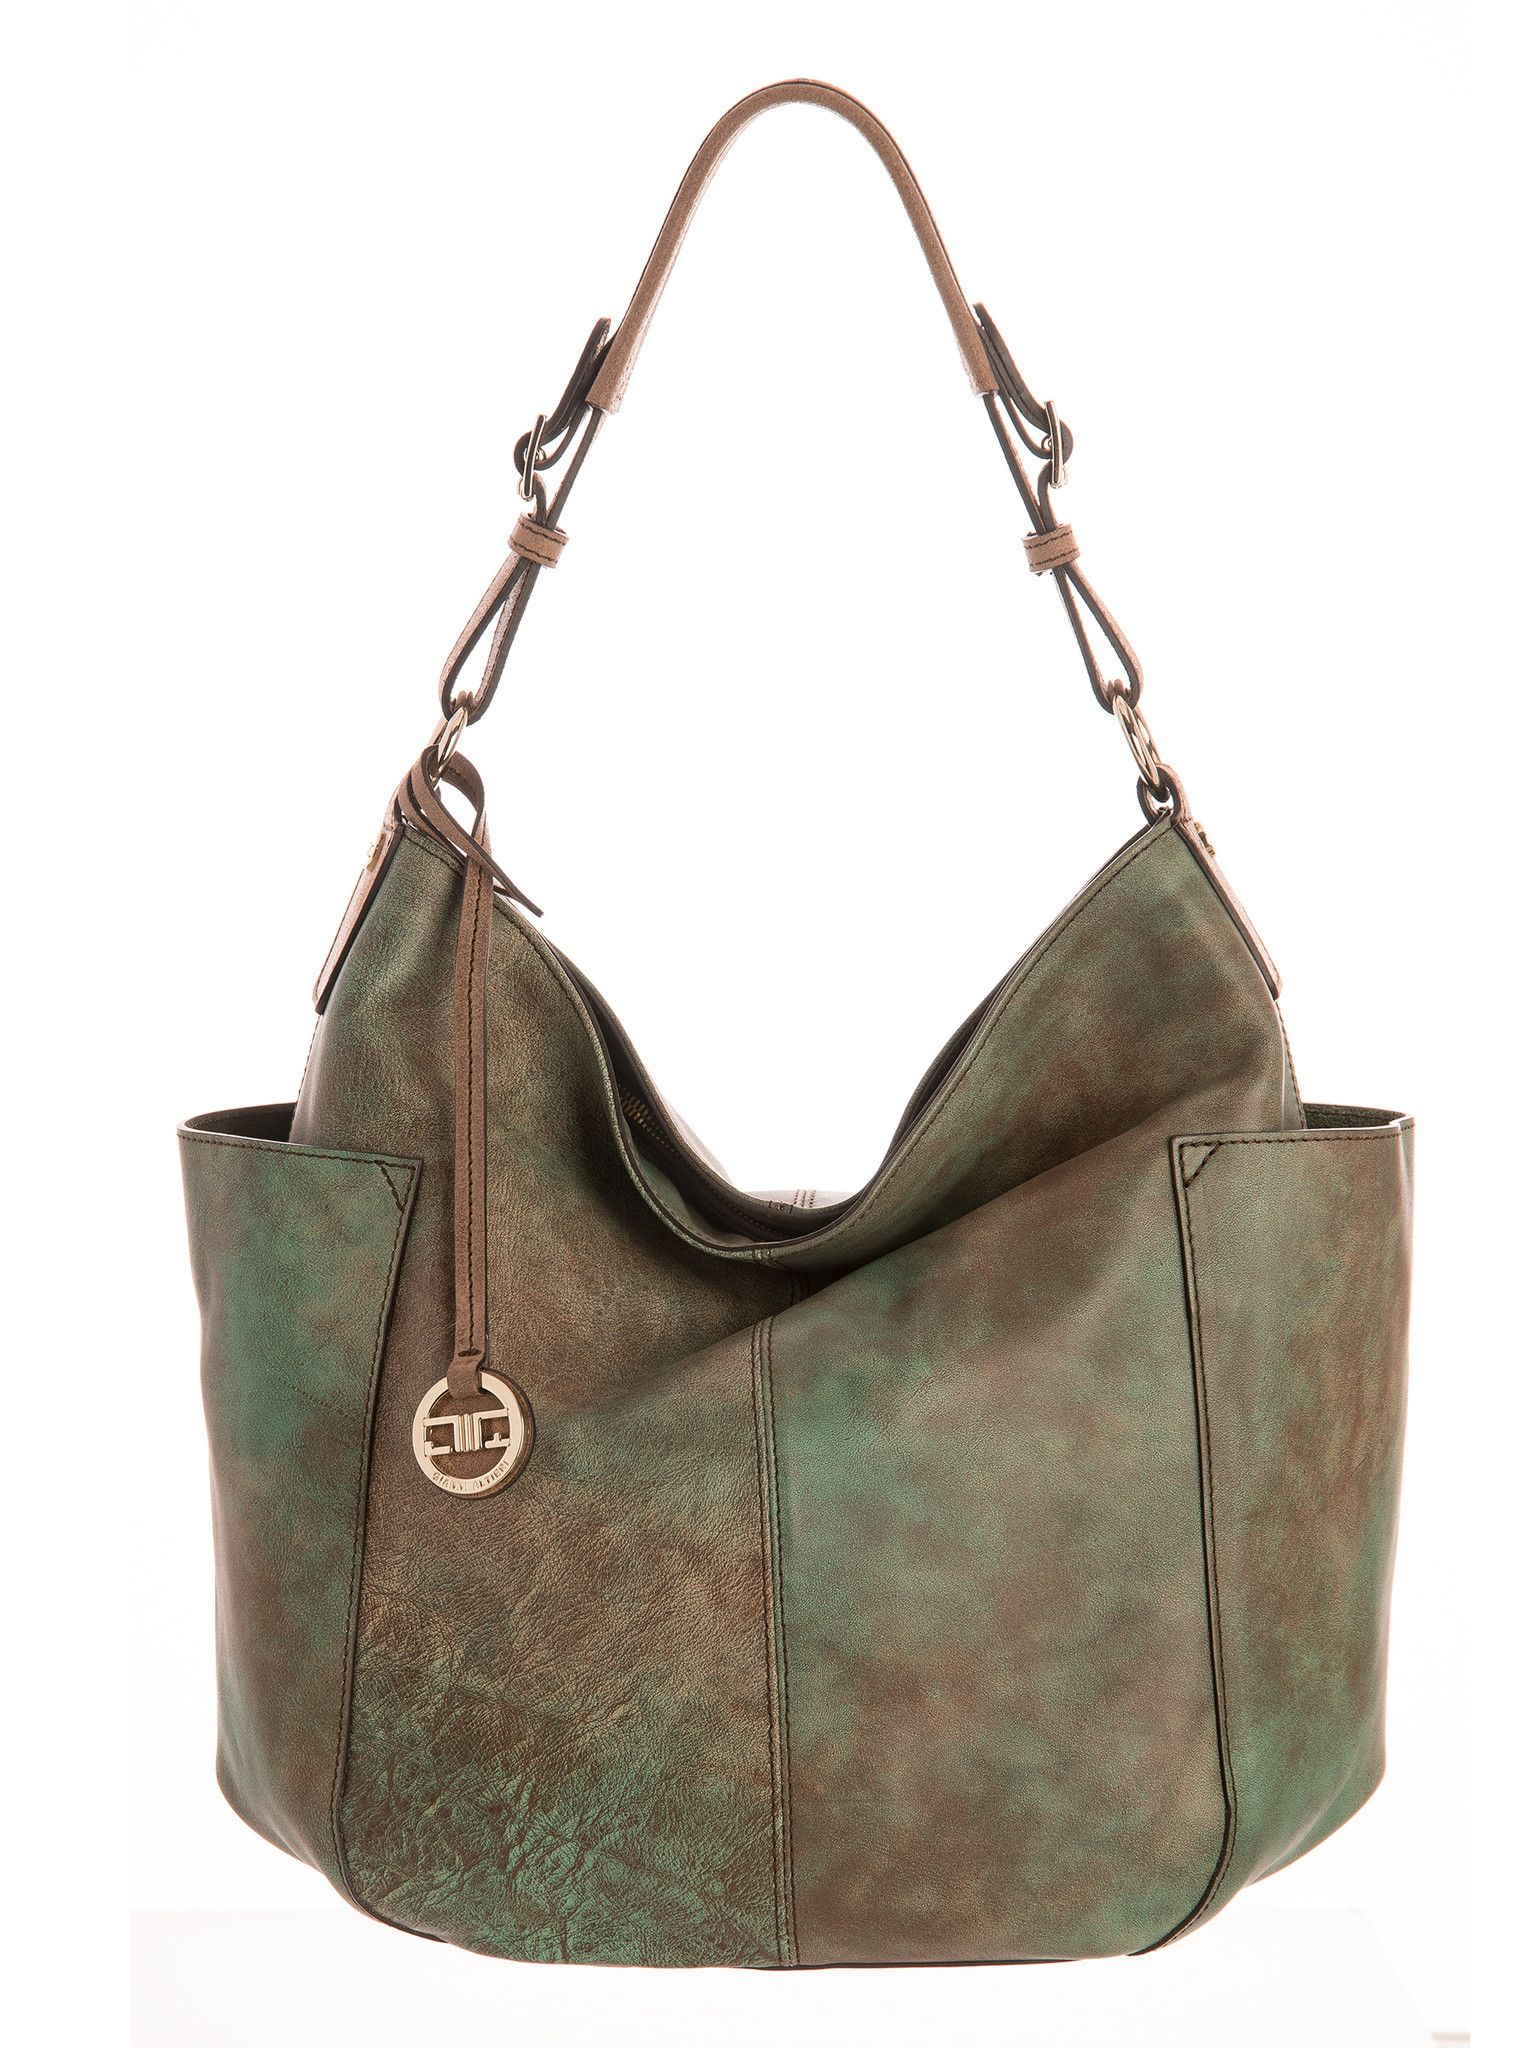 7cc5b9e2b299 Fashionable Italian handbags by artisans using traditional methods